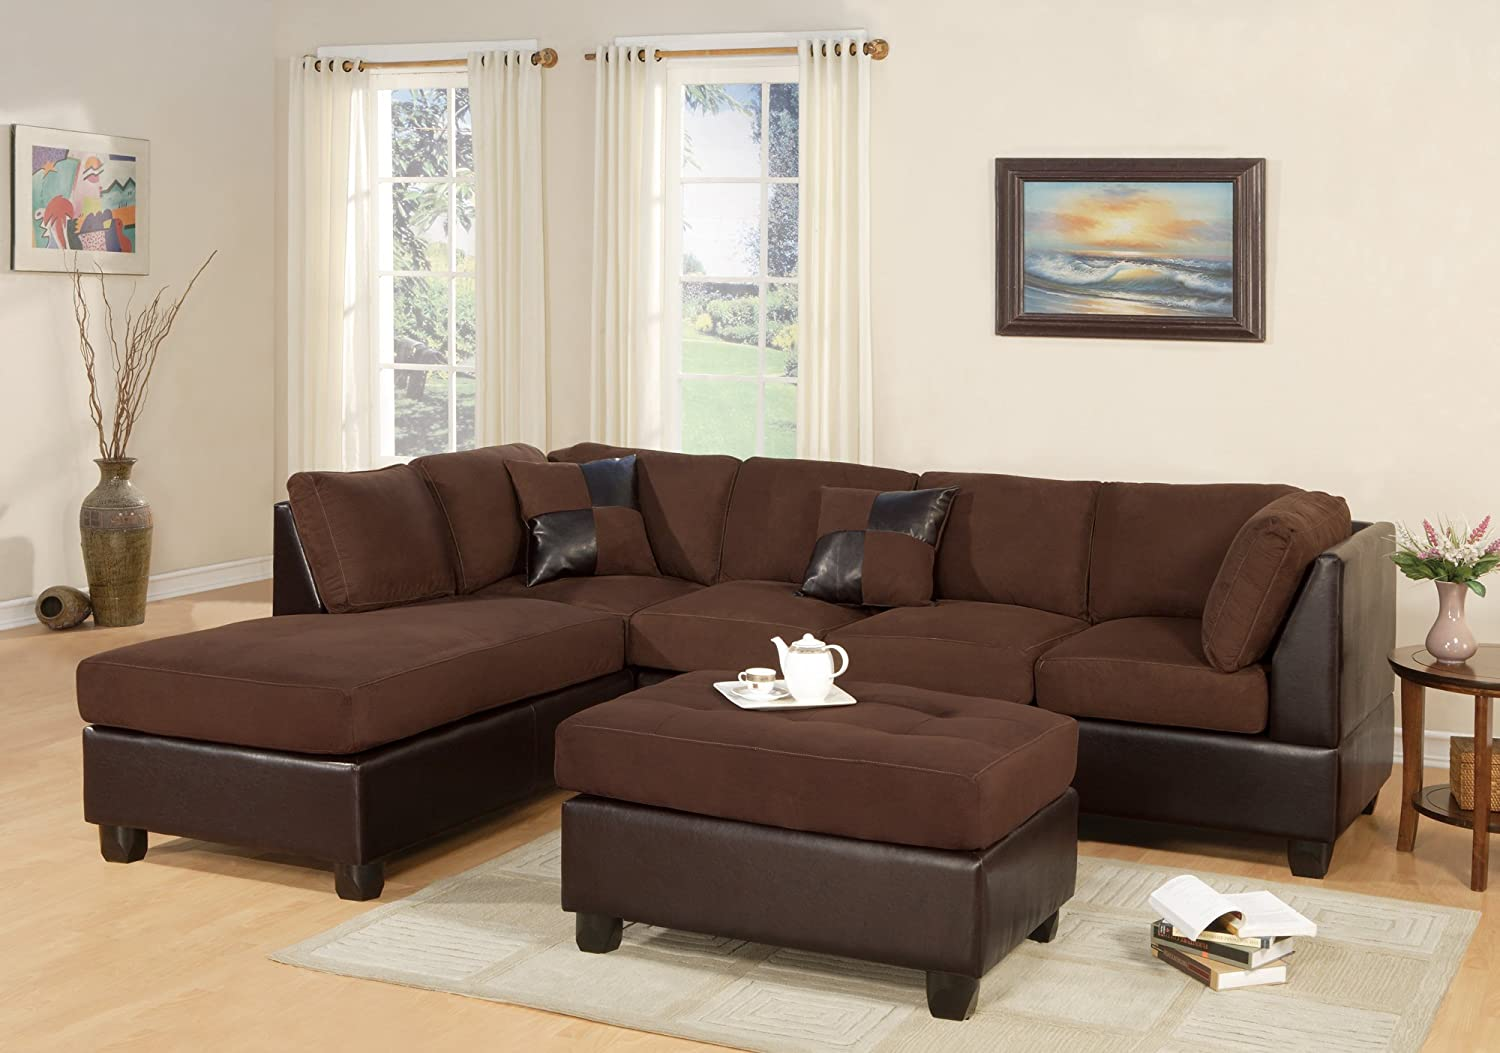 furniture living s sectionals sectional schneiderman seating sofa sofas room and theater mn